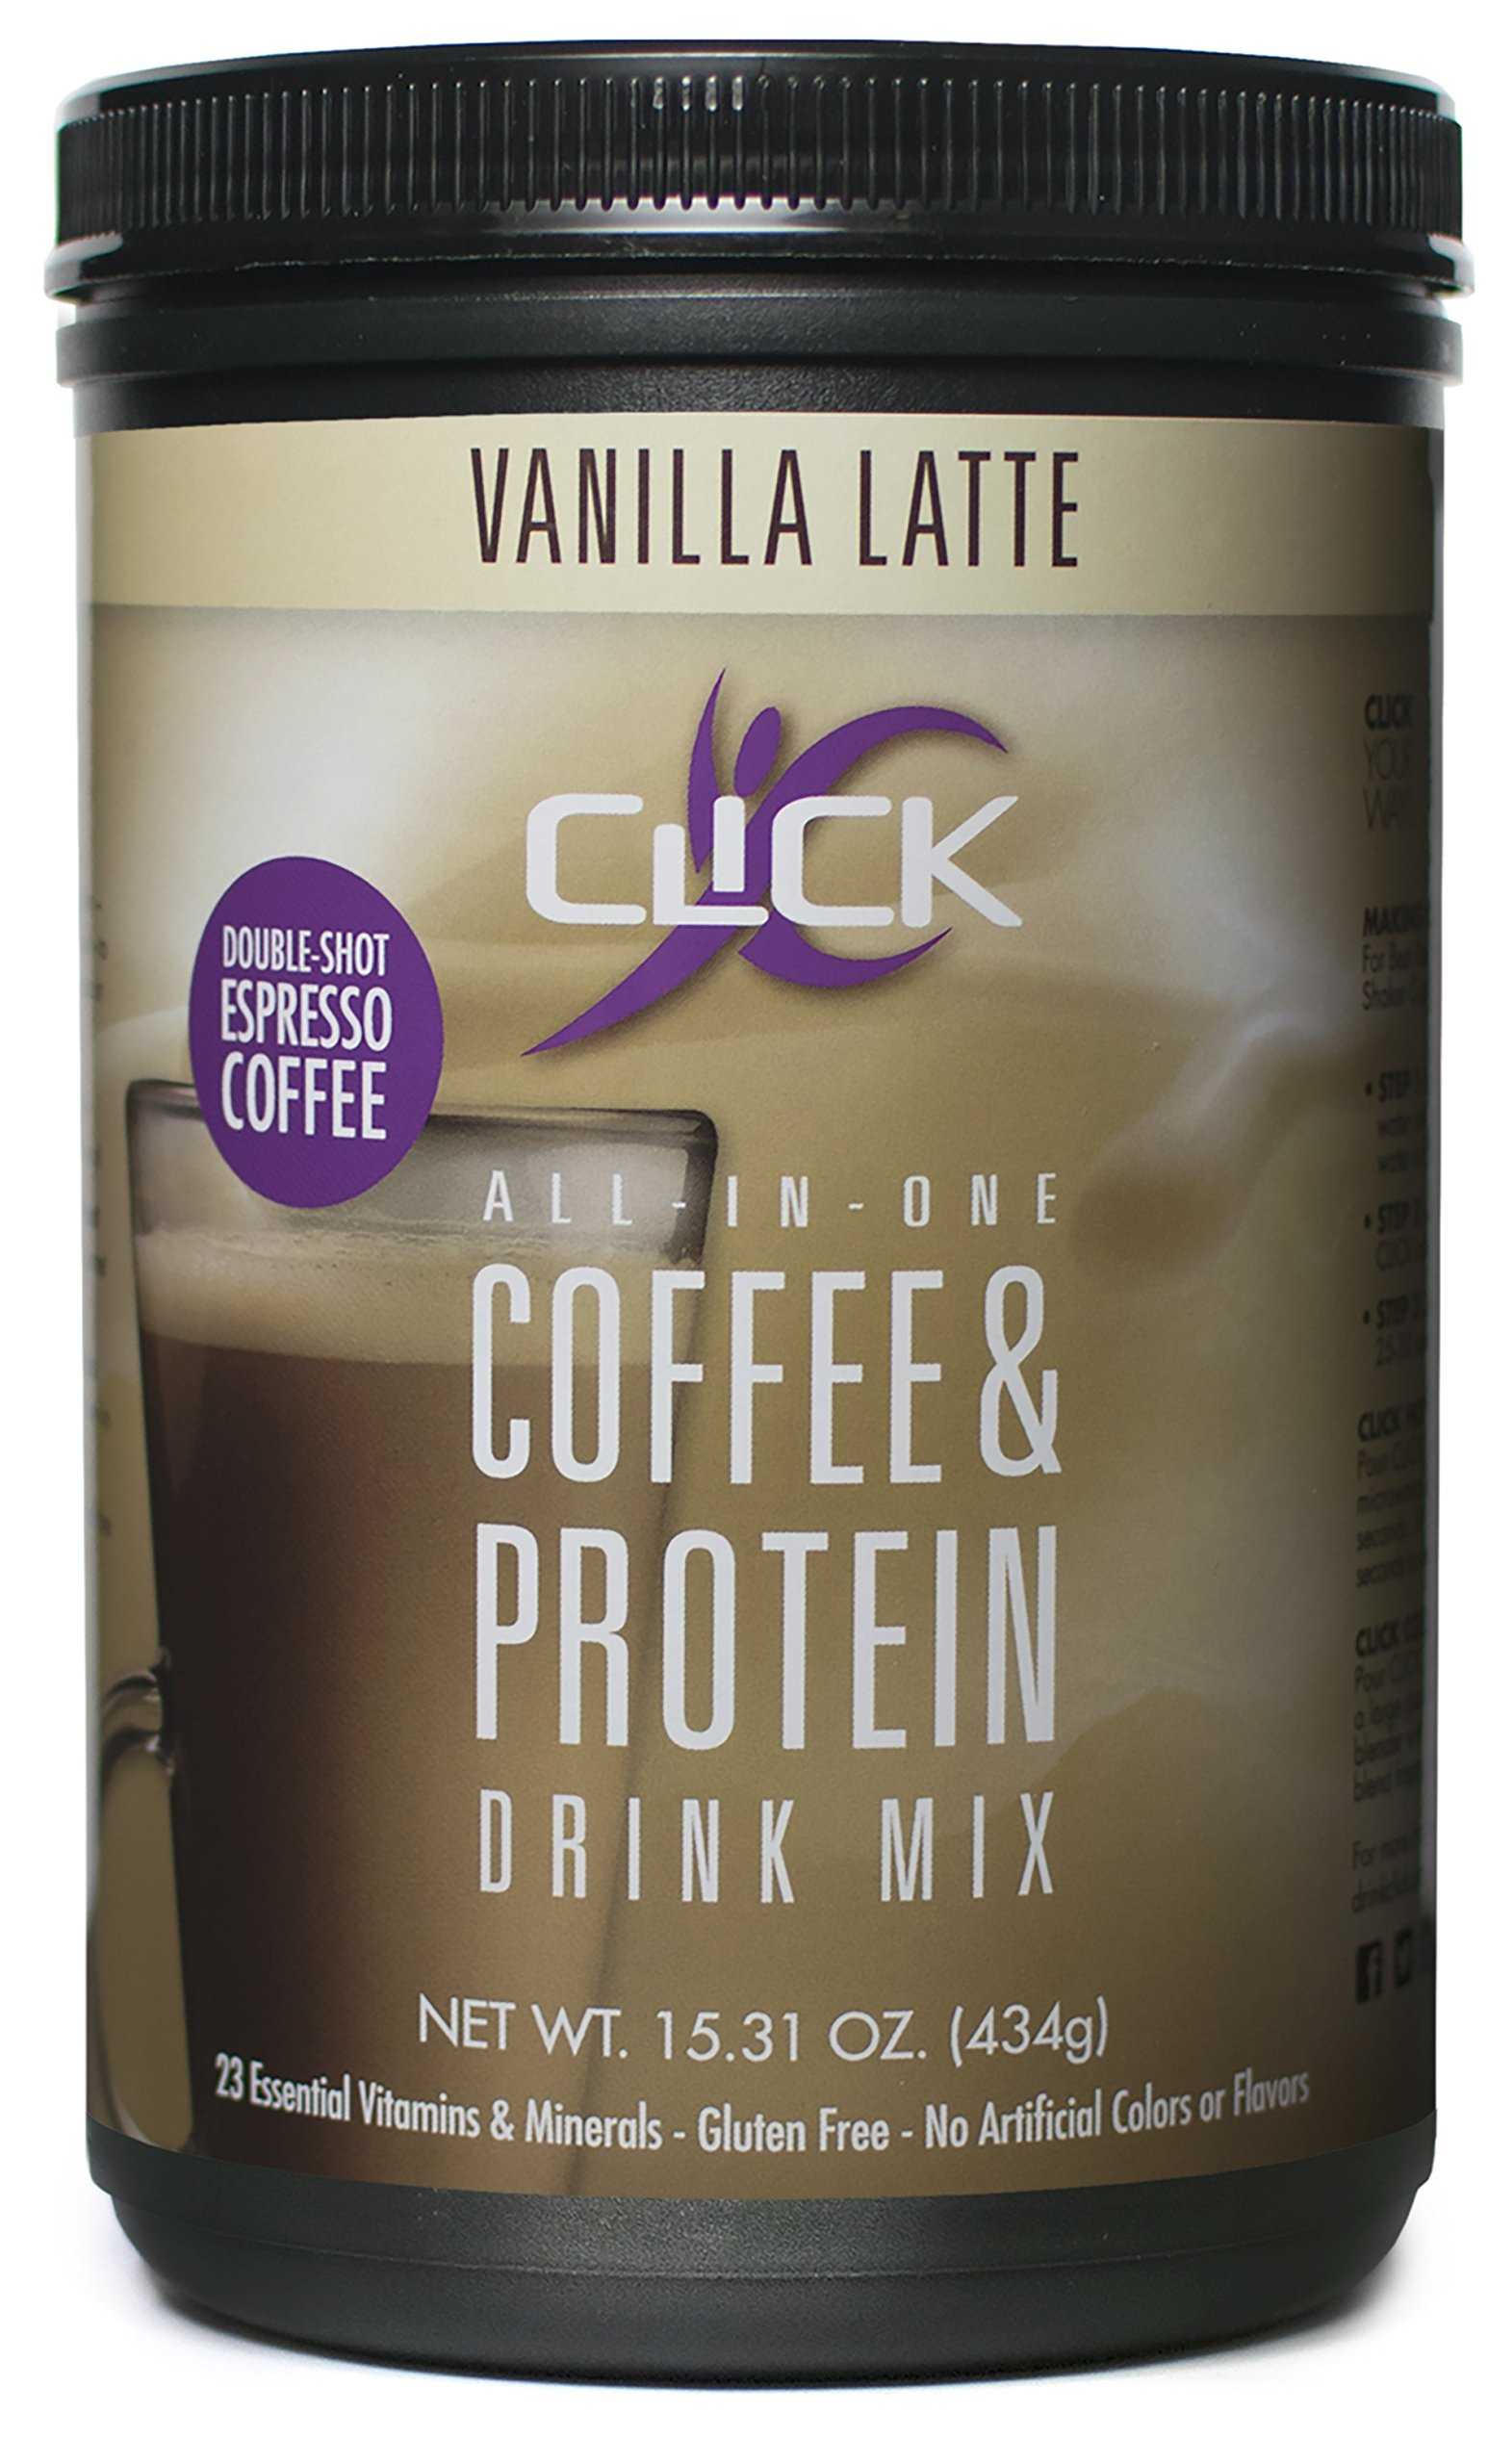 Amazon.com: CLICK Coffee Protein | Protein & Real Coffee, All-In-One| Meal Replacement ...